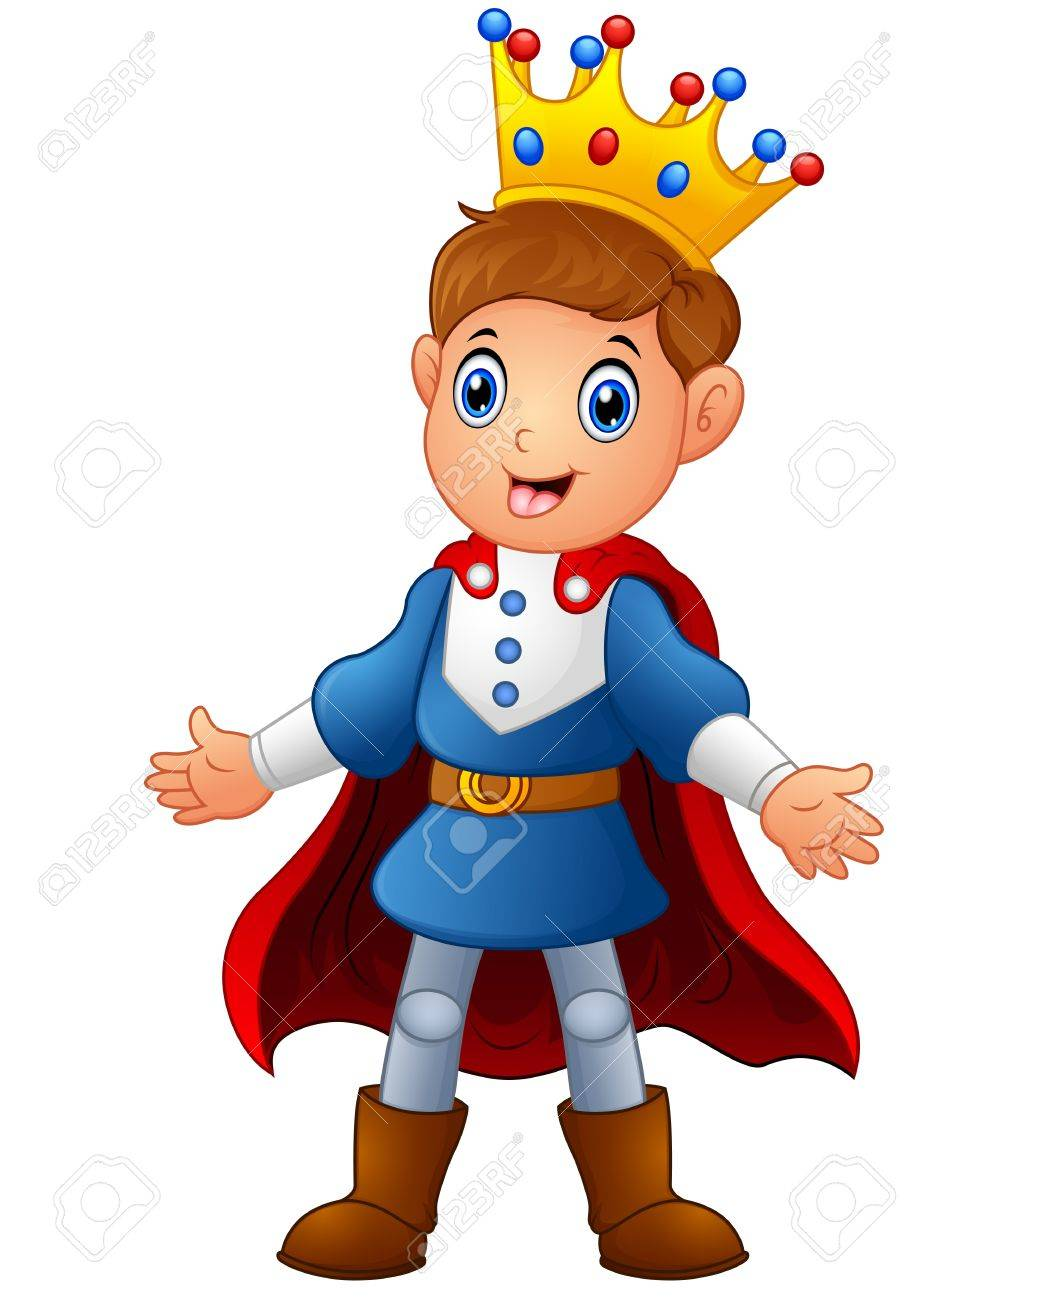 1047x1300 Strikingly Beautiful Prince Clipart Cute Boy With Red Cloak